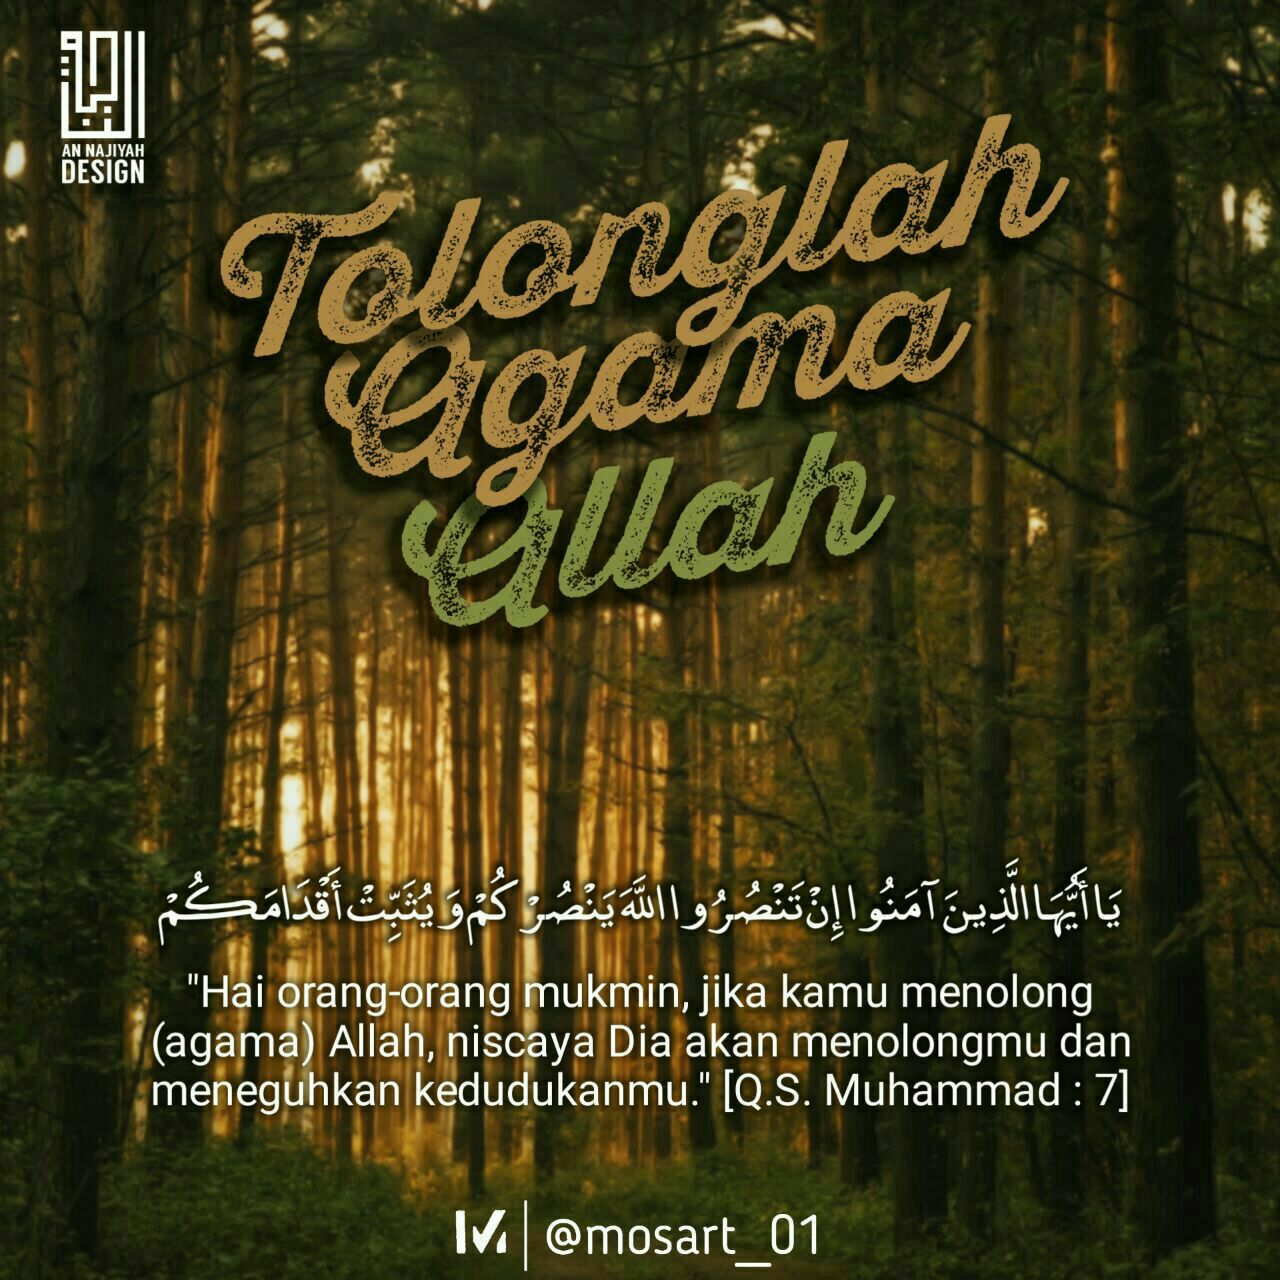 tolonglah-agama-allah